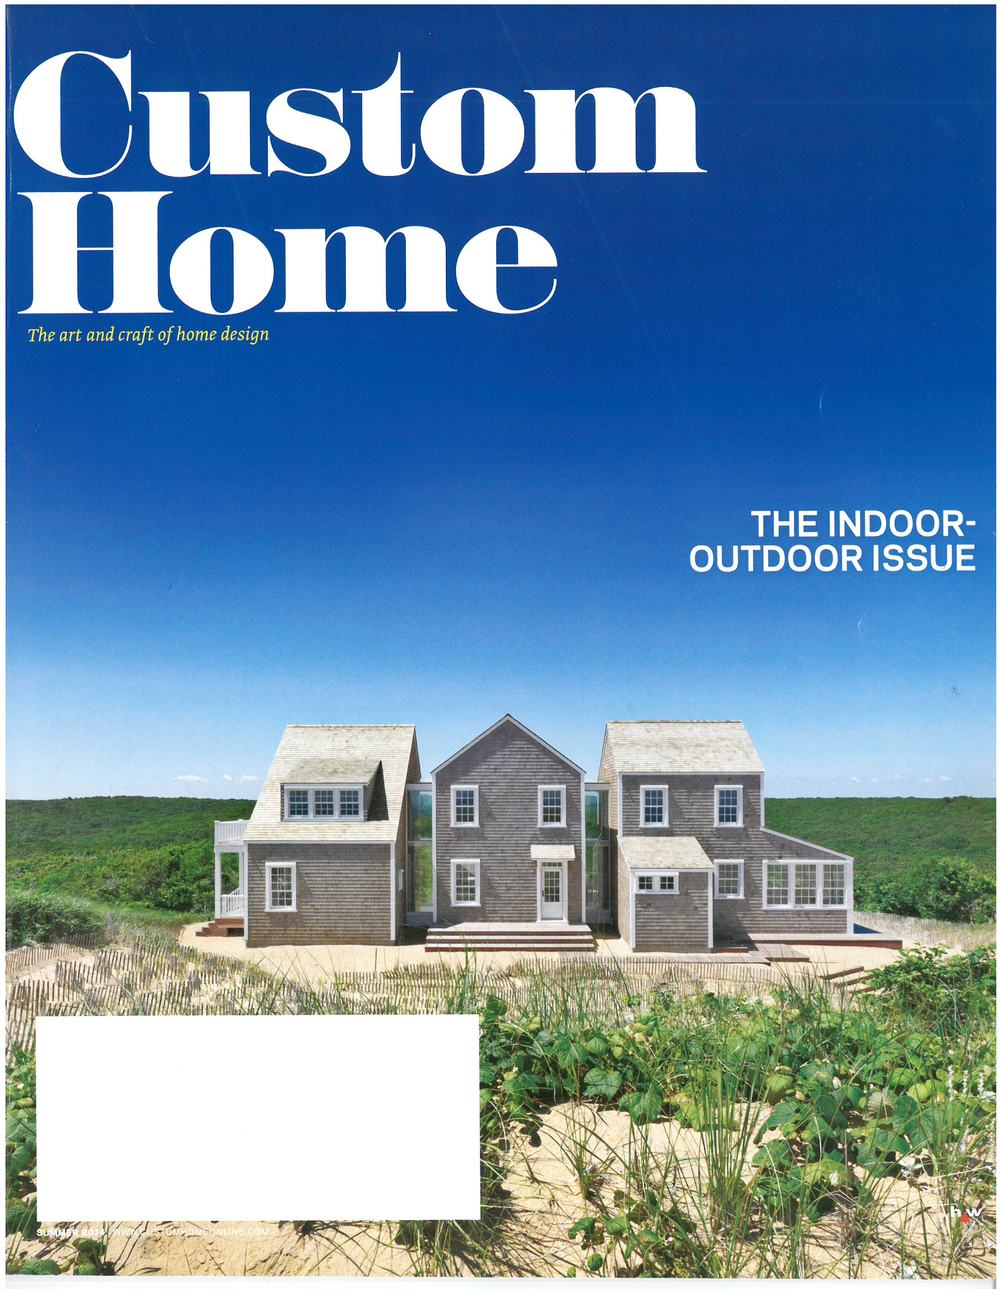 Custom Home cover.jpg